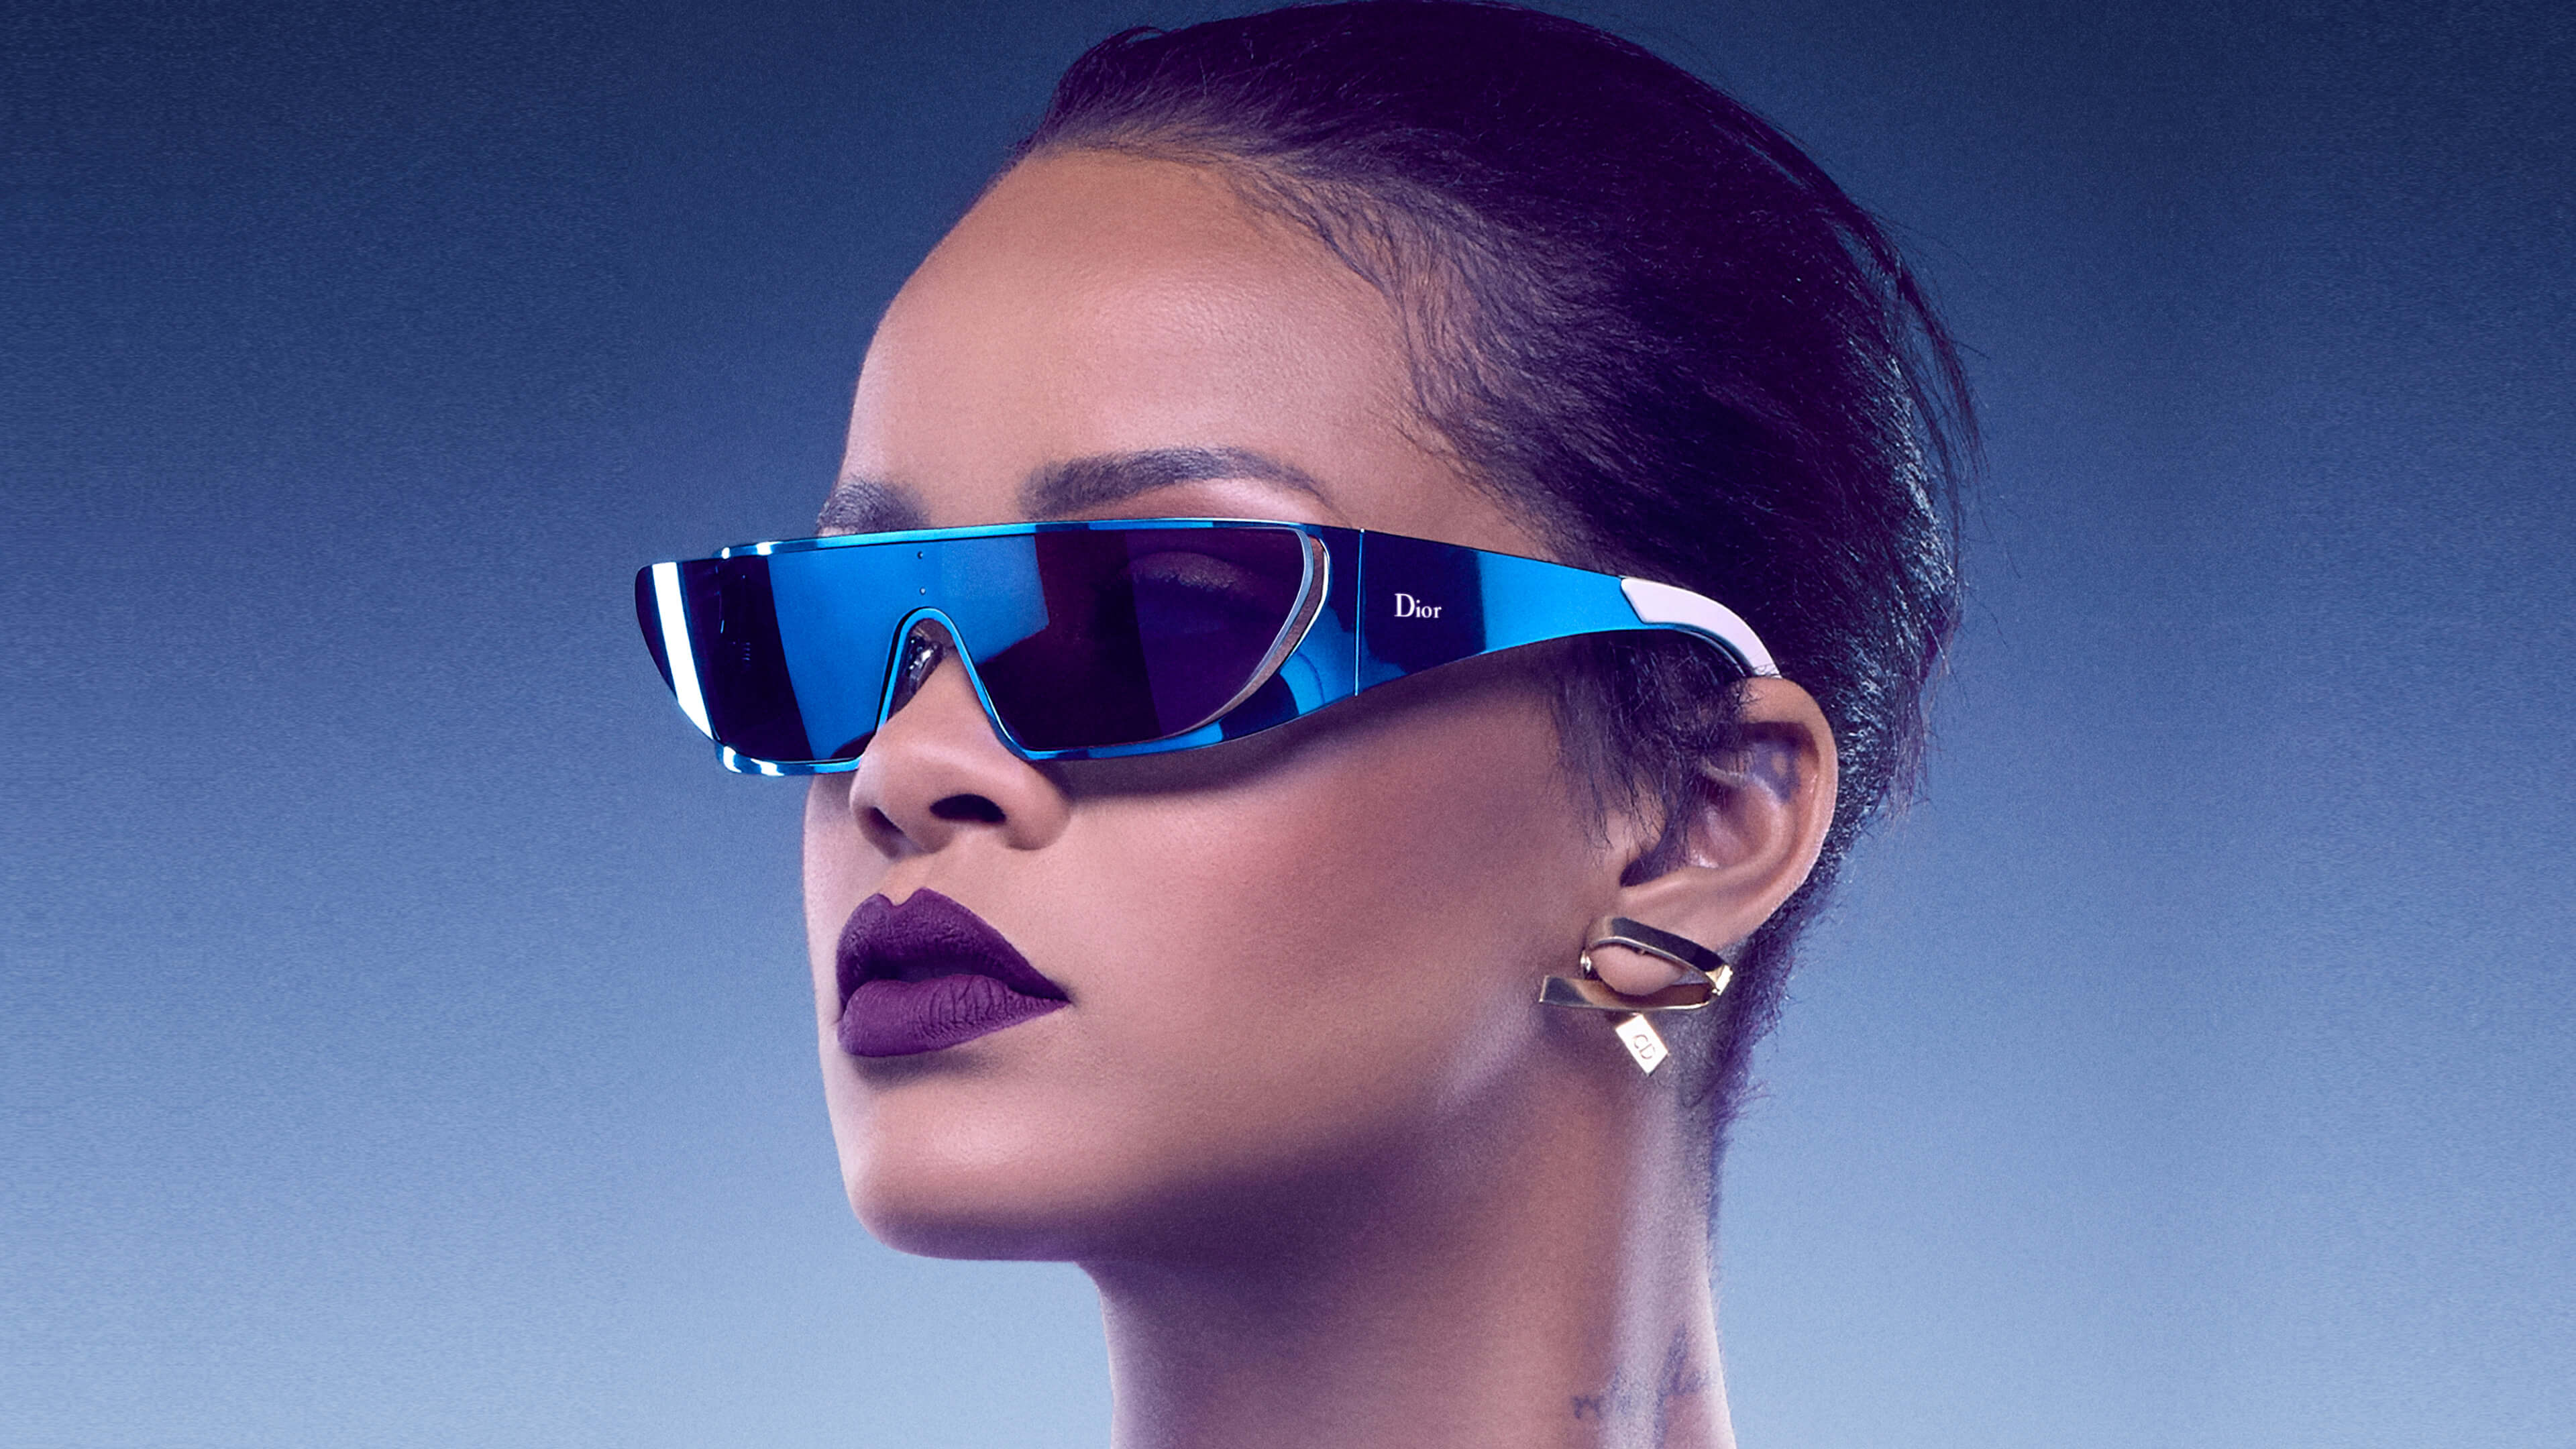 rihanna glasses hd background wallpaper 65533